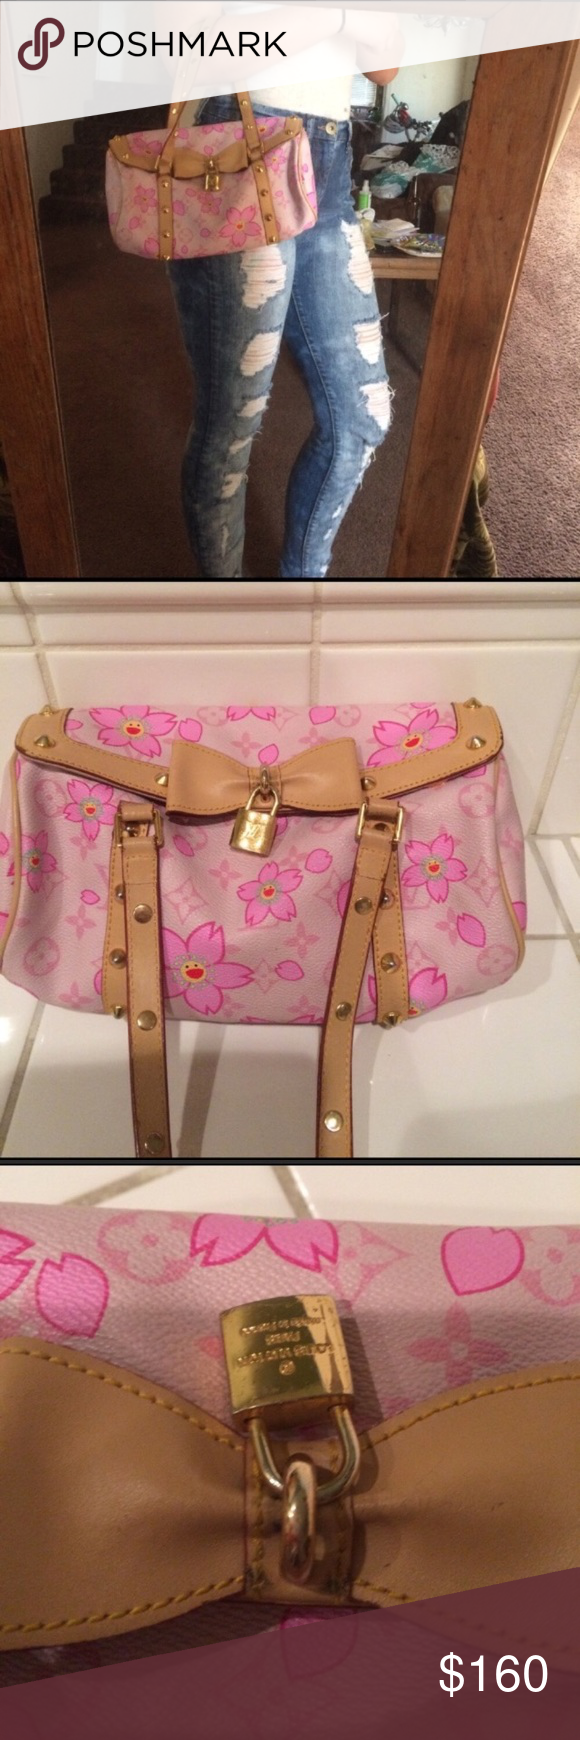 Louis Vuitton Pink Flower Smiley Face Purse Good Used Condition